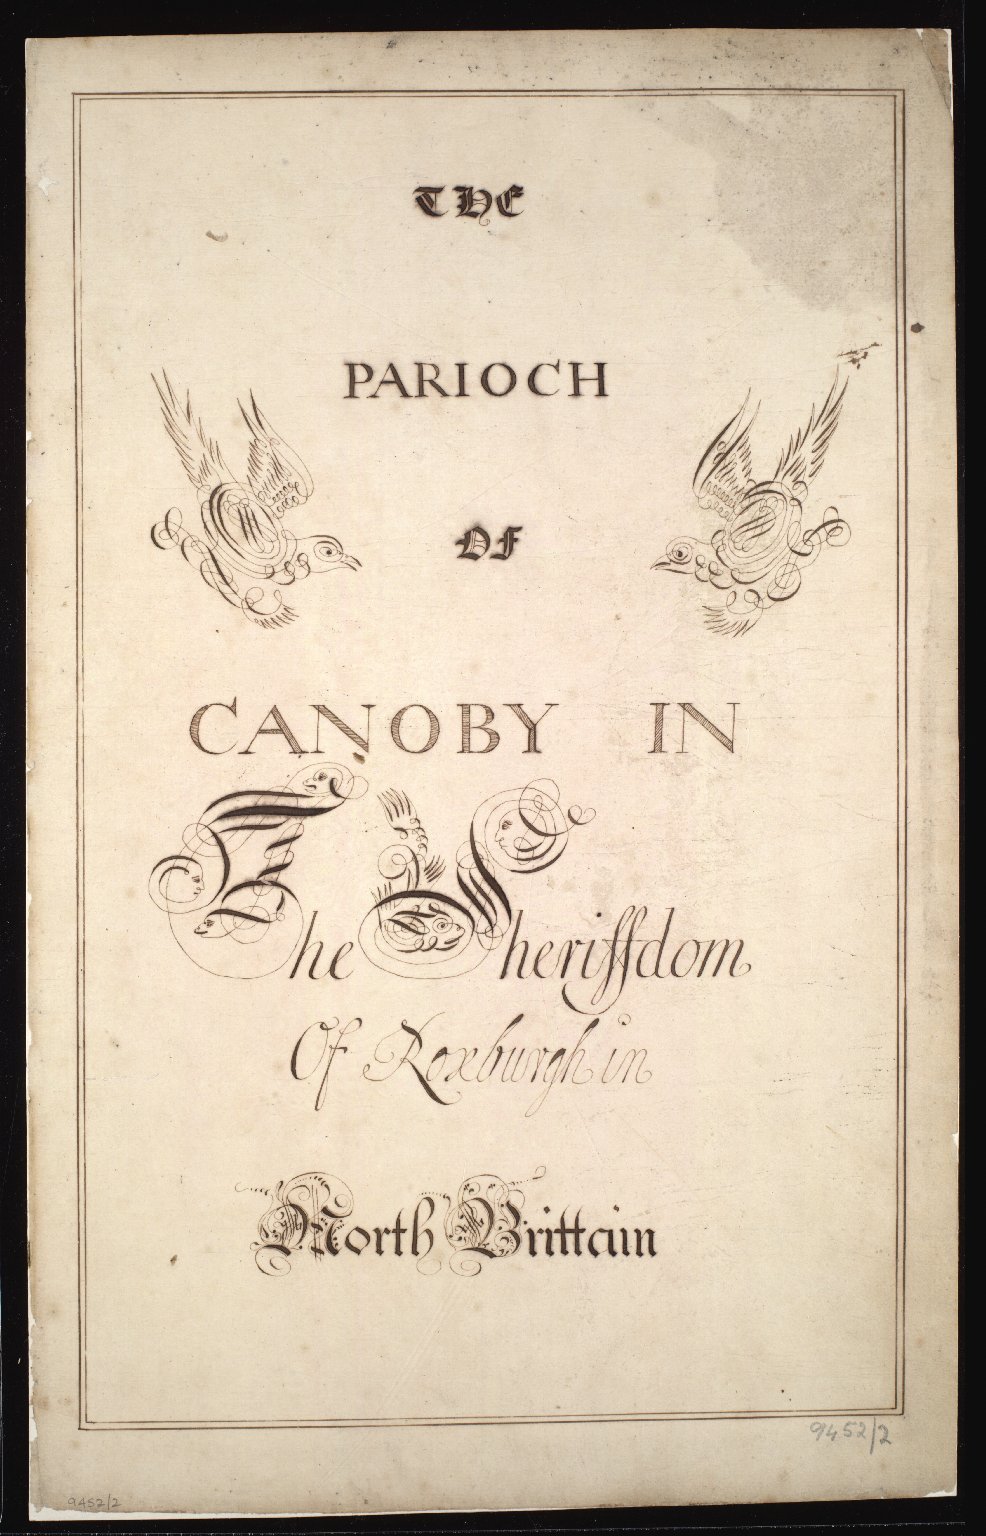 The Parioch of Canoby [Canonbie] in the Sheriffdom of Roxburgh in North Britain [2 of 3]